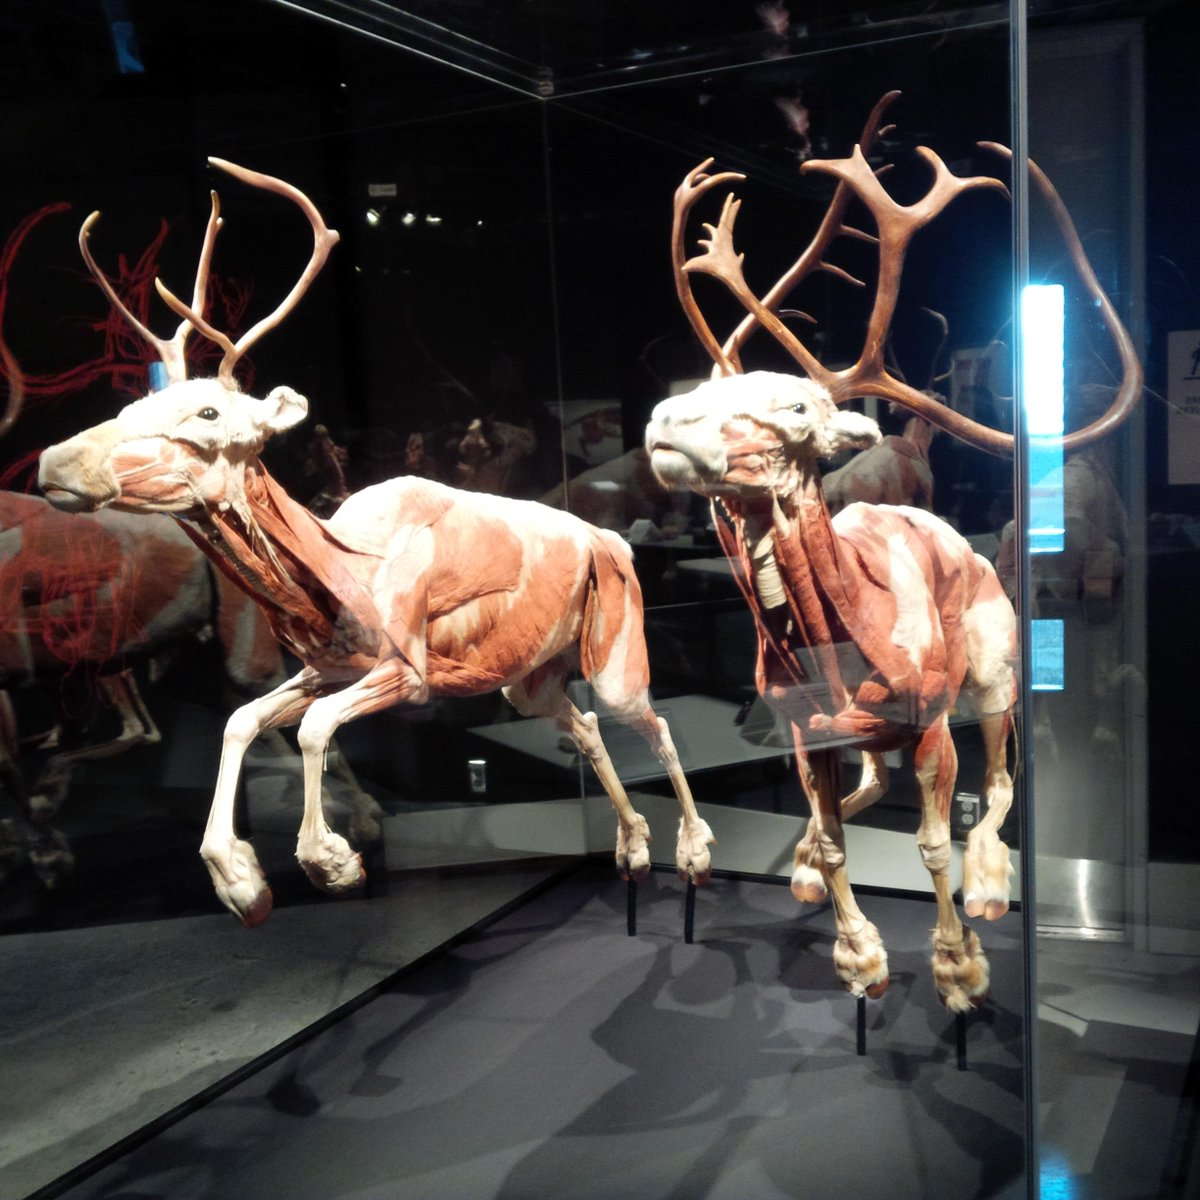 Sneak peek of some caribou at the fascinating #AnimalInsideOut exhibition @MuseumofNature. It opens May 1! http://t.co/1dIwJmjEXe